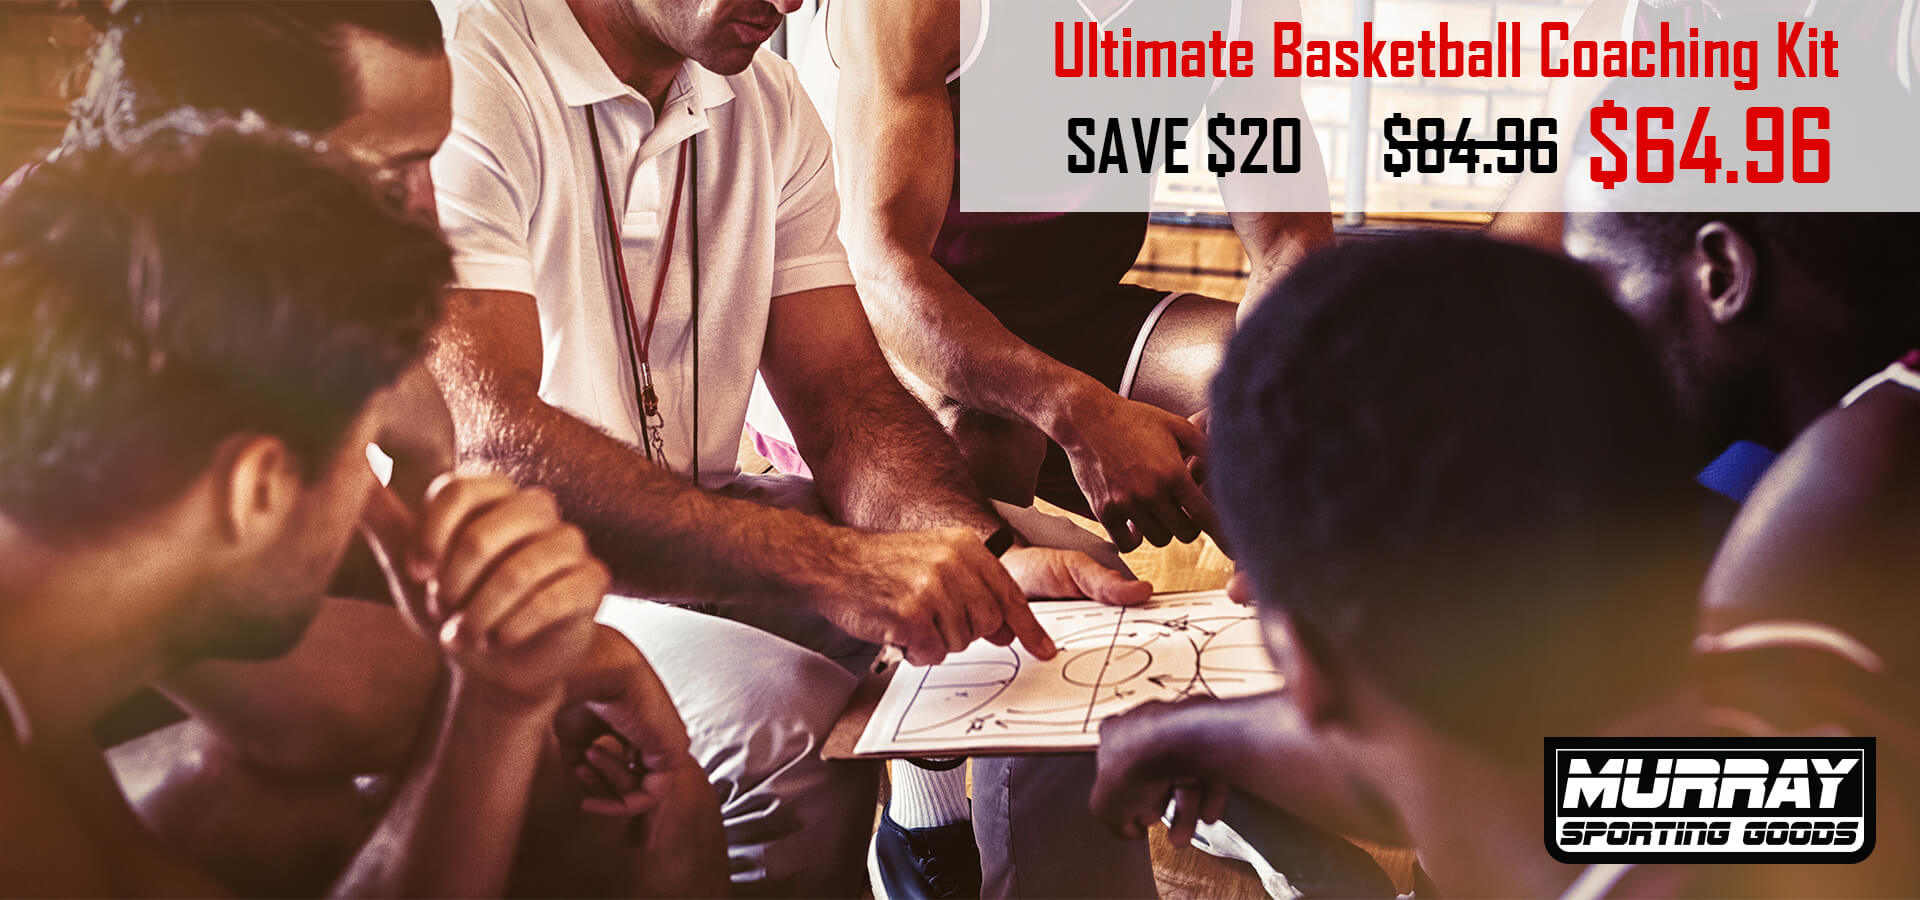 Murray Sporting Goods - Ultimate Basketball Coaching Kit